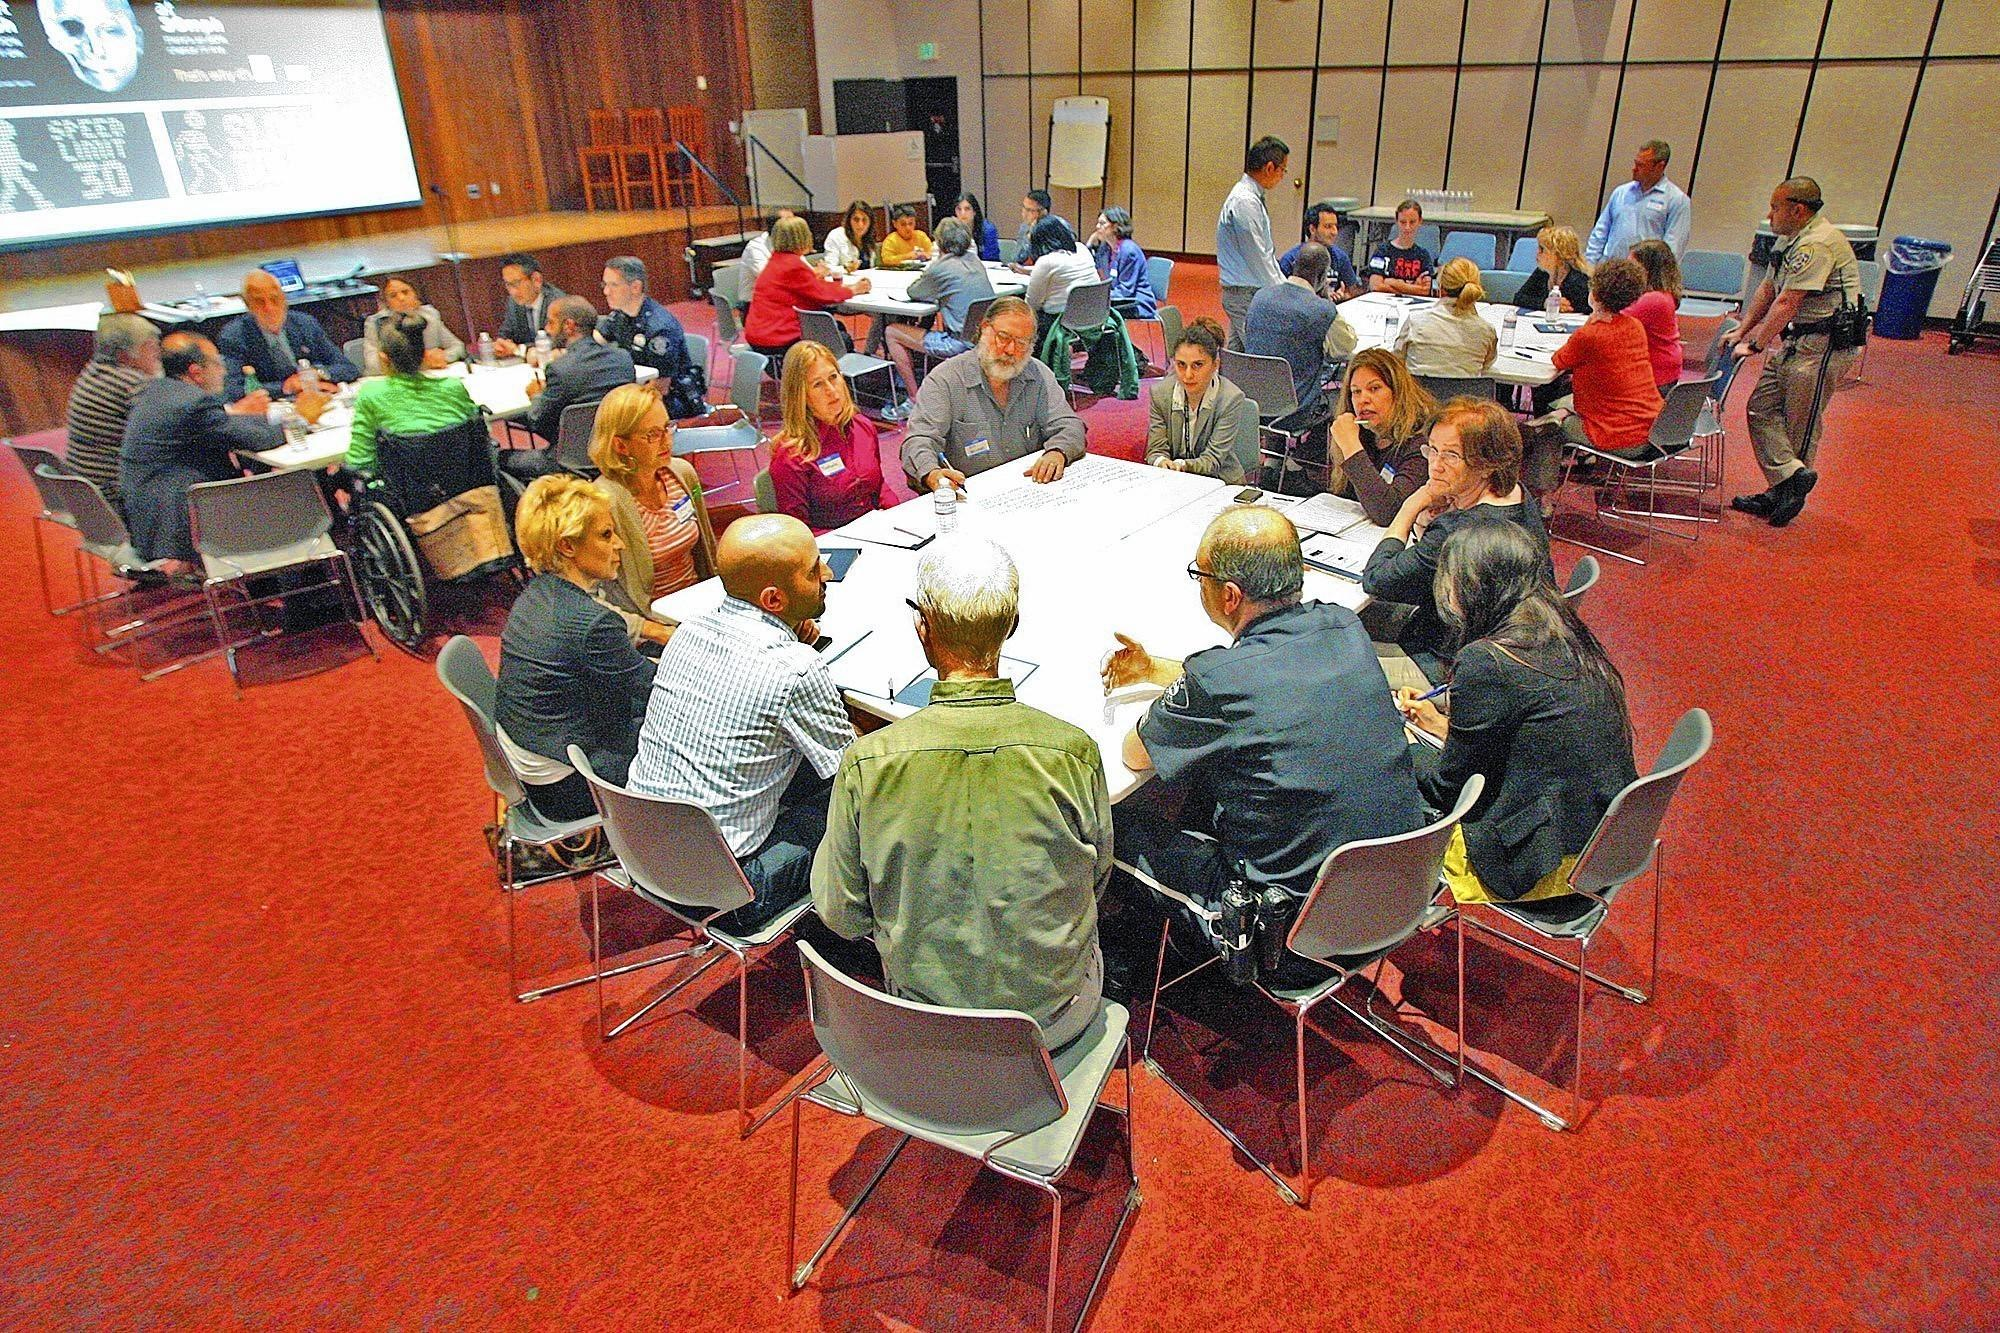 Several tables of community members gather to discuss ideas for pedestrian safety at a community pedestrian safety training at the Glendale Central Library on Thursday, April 17, 2014. The program works with the public to come up with answers to improve safety in Glendale.